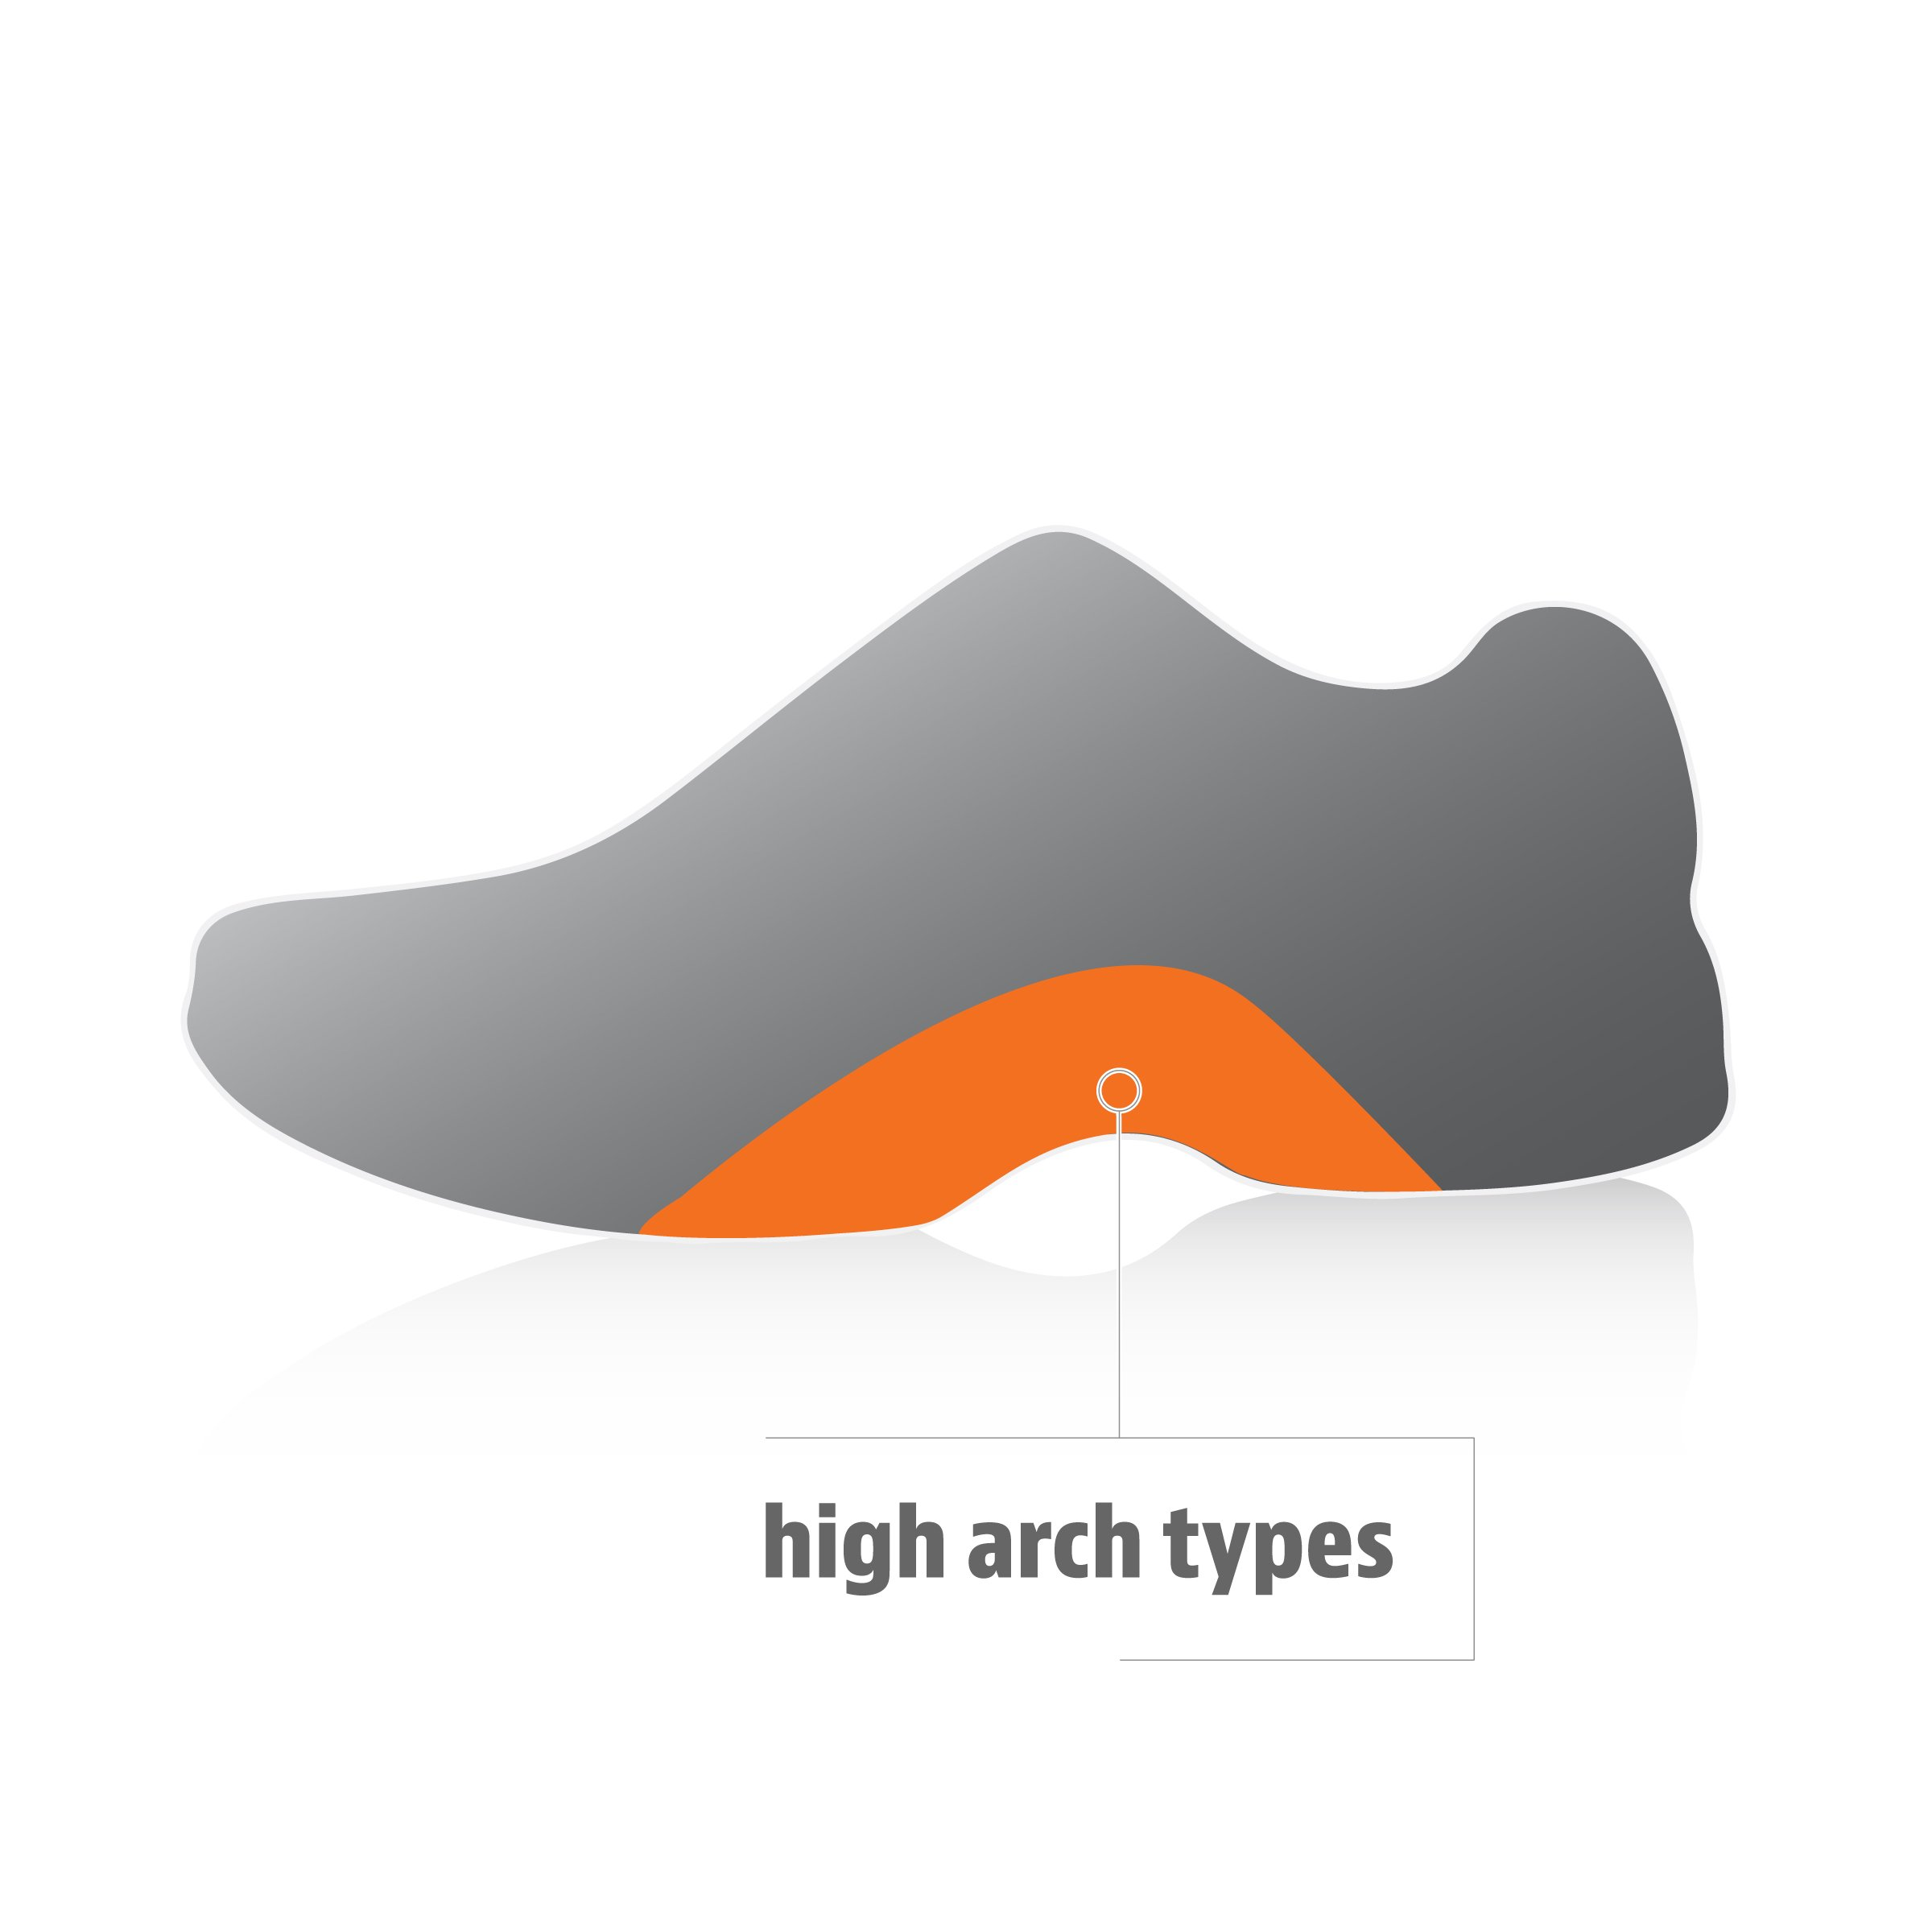 Sof Sole Men's Arch Full Length Comfort High Arch Shoe Insole, Men's Size 9-10.5 by Sof Sole (Image #5)